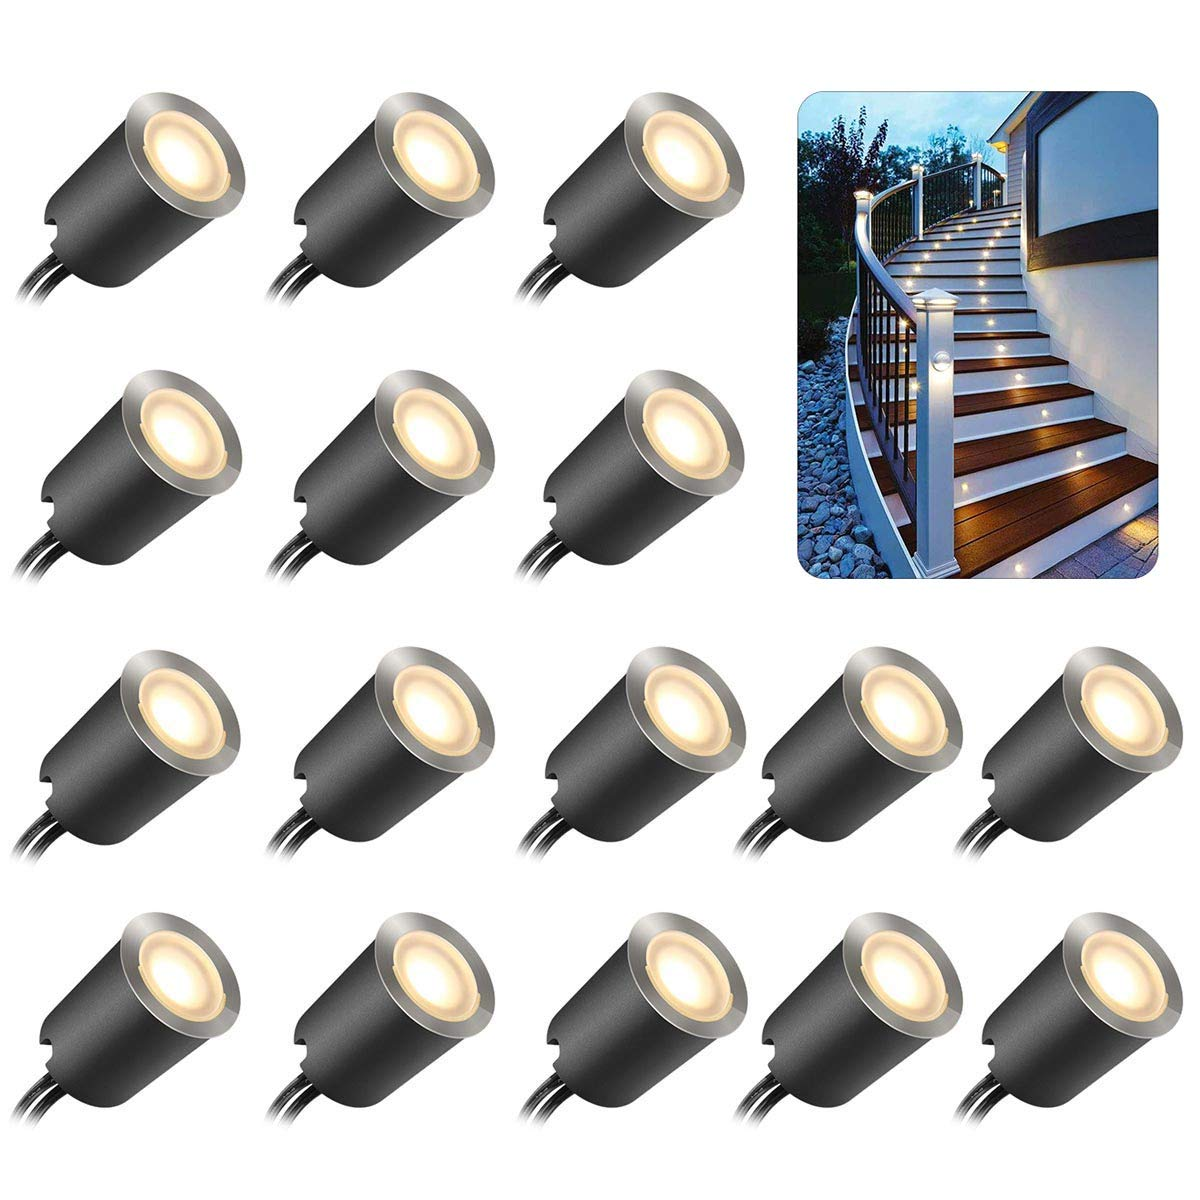 Recessed LED Deck Light Kits with Protecting Shell φ32mm,SMY In Ground Outdoor LED Landscape Lighting IP67 Waterproof, 12V Low Voltage for Garden,Yard Steps,Stair,Patio,Floor,Kitchen Decoration